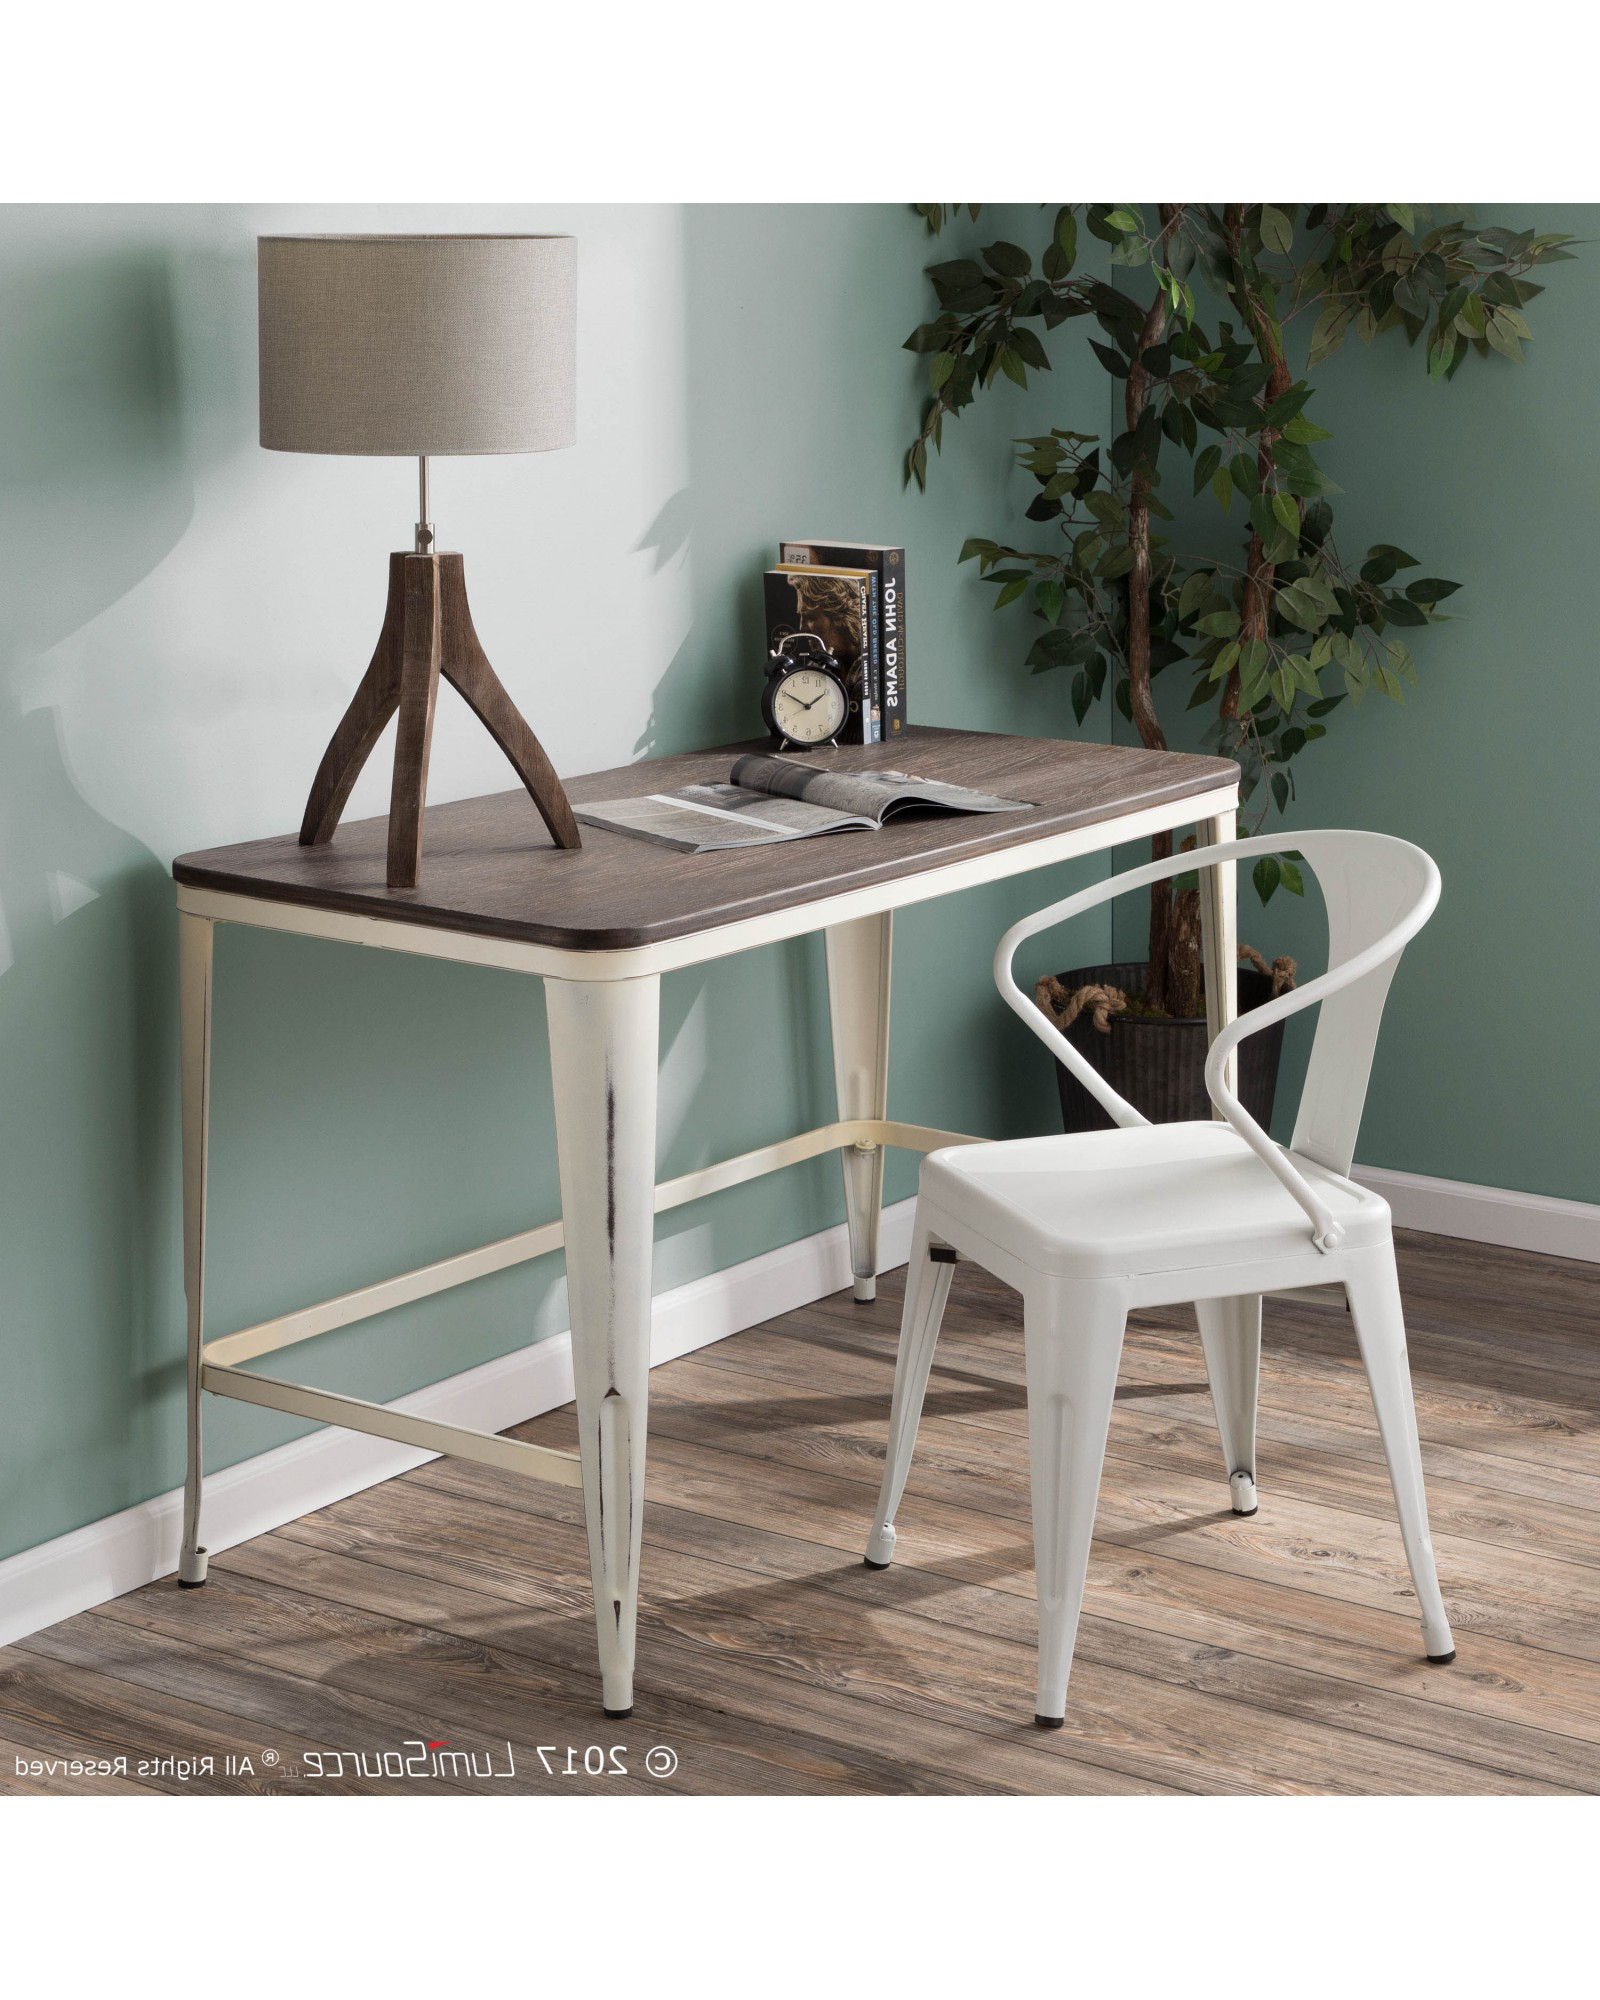 Most Current Pia Industrial Desk – Pia Industrial Desk In Vintage Cream Inside Vintage Cream Frame And Espresso Bamboo Dining Tables (View 17 of 25)